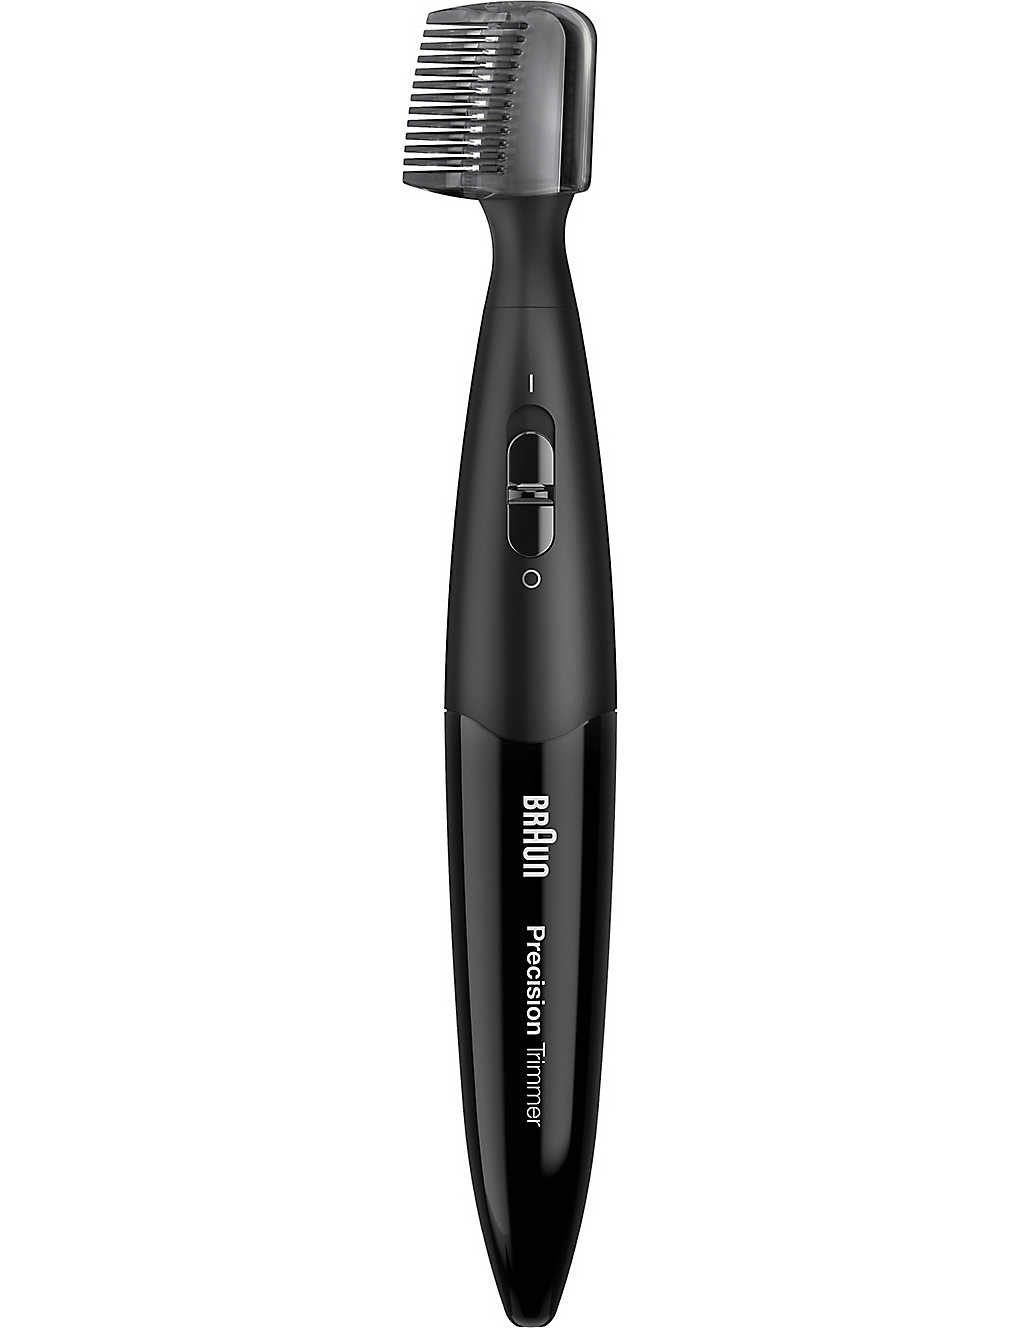 BRAUN: Precision trimmer PT5010